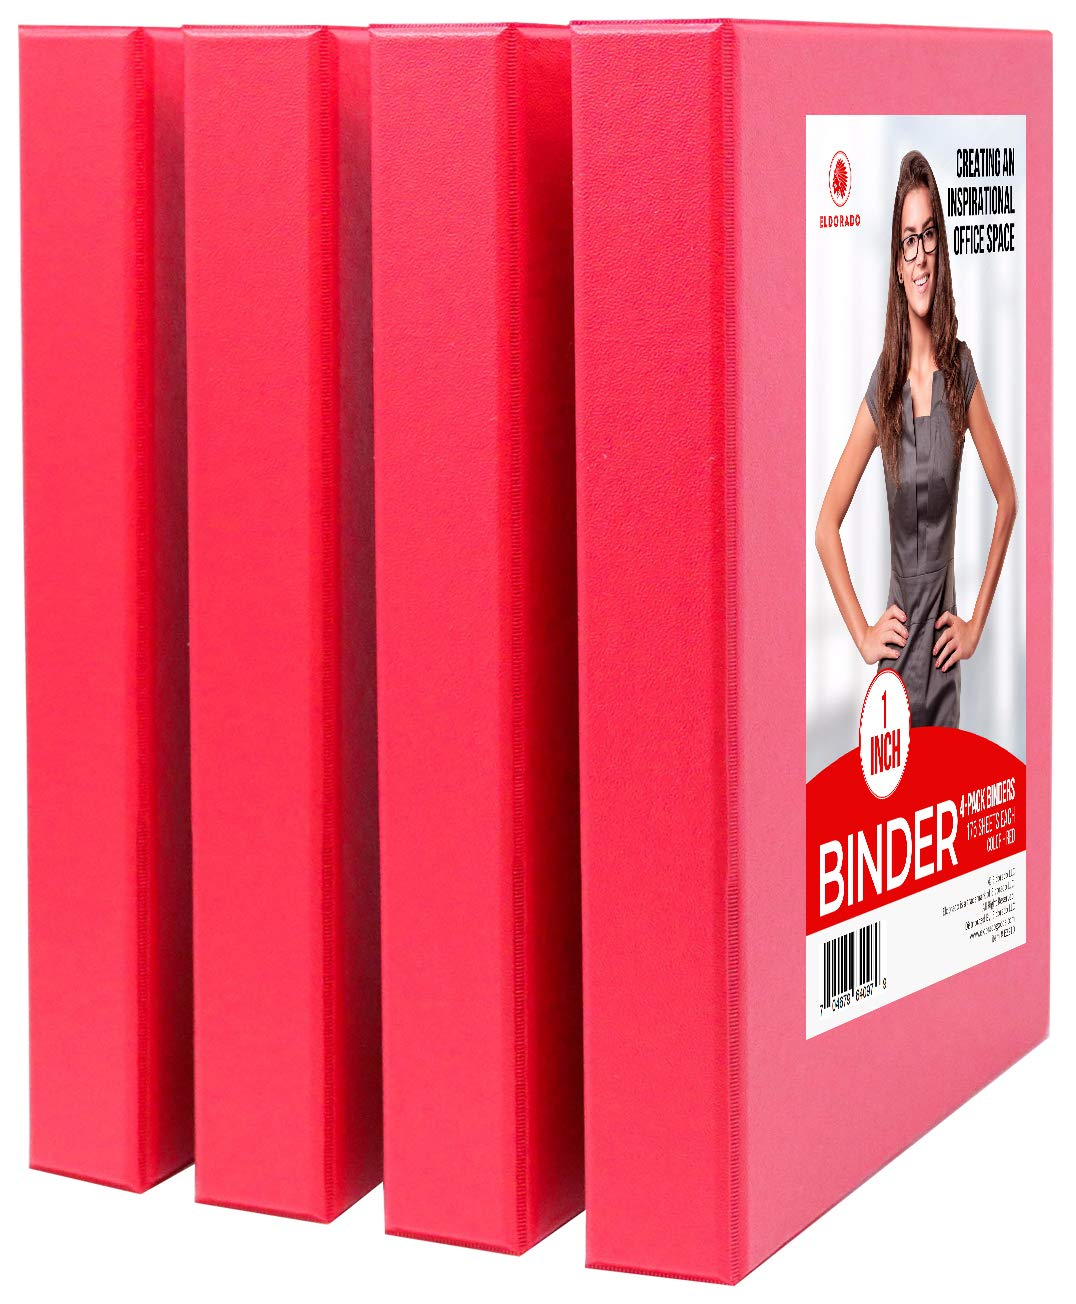 Eldorado Binder - 3 Rings 1 inch in Diameter, for Office, Home, College, Student, Work, Presentation, Project, and Report Use (Red)